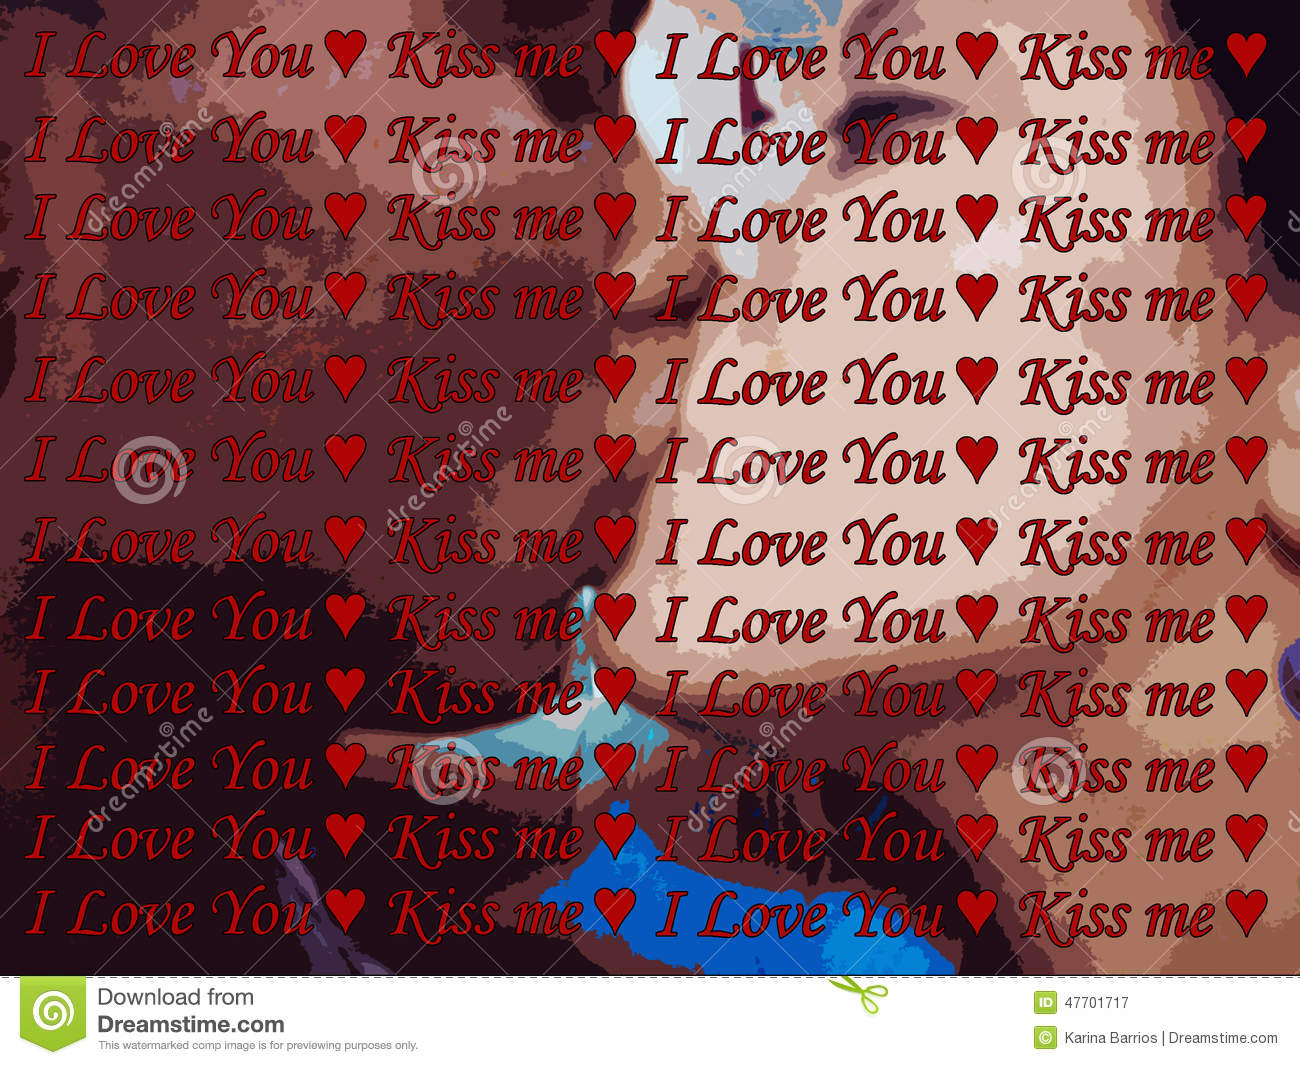 I Love You And Kiss Wallpaper : Kiss Me Now Stock Photo - Image: 47701717